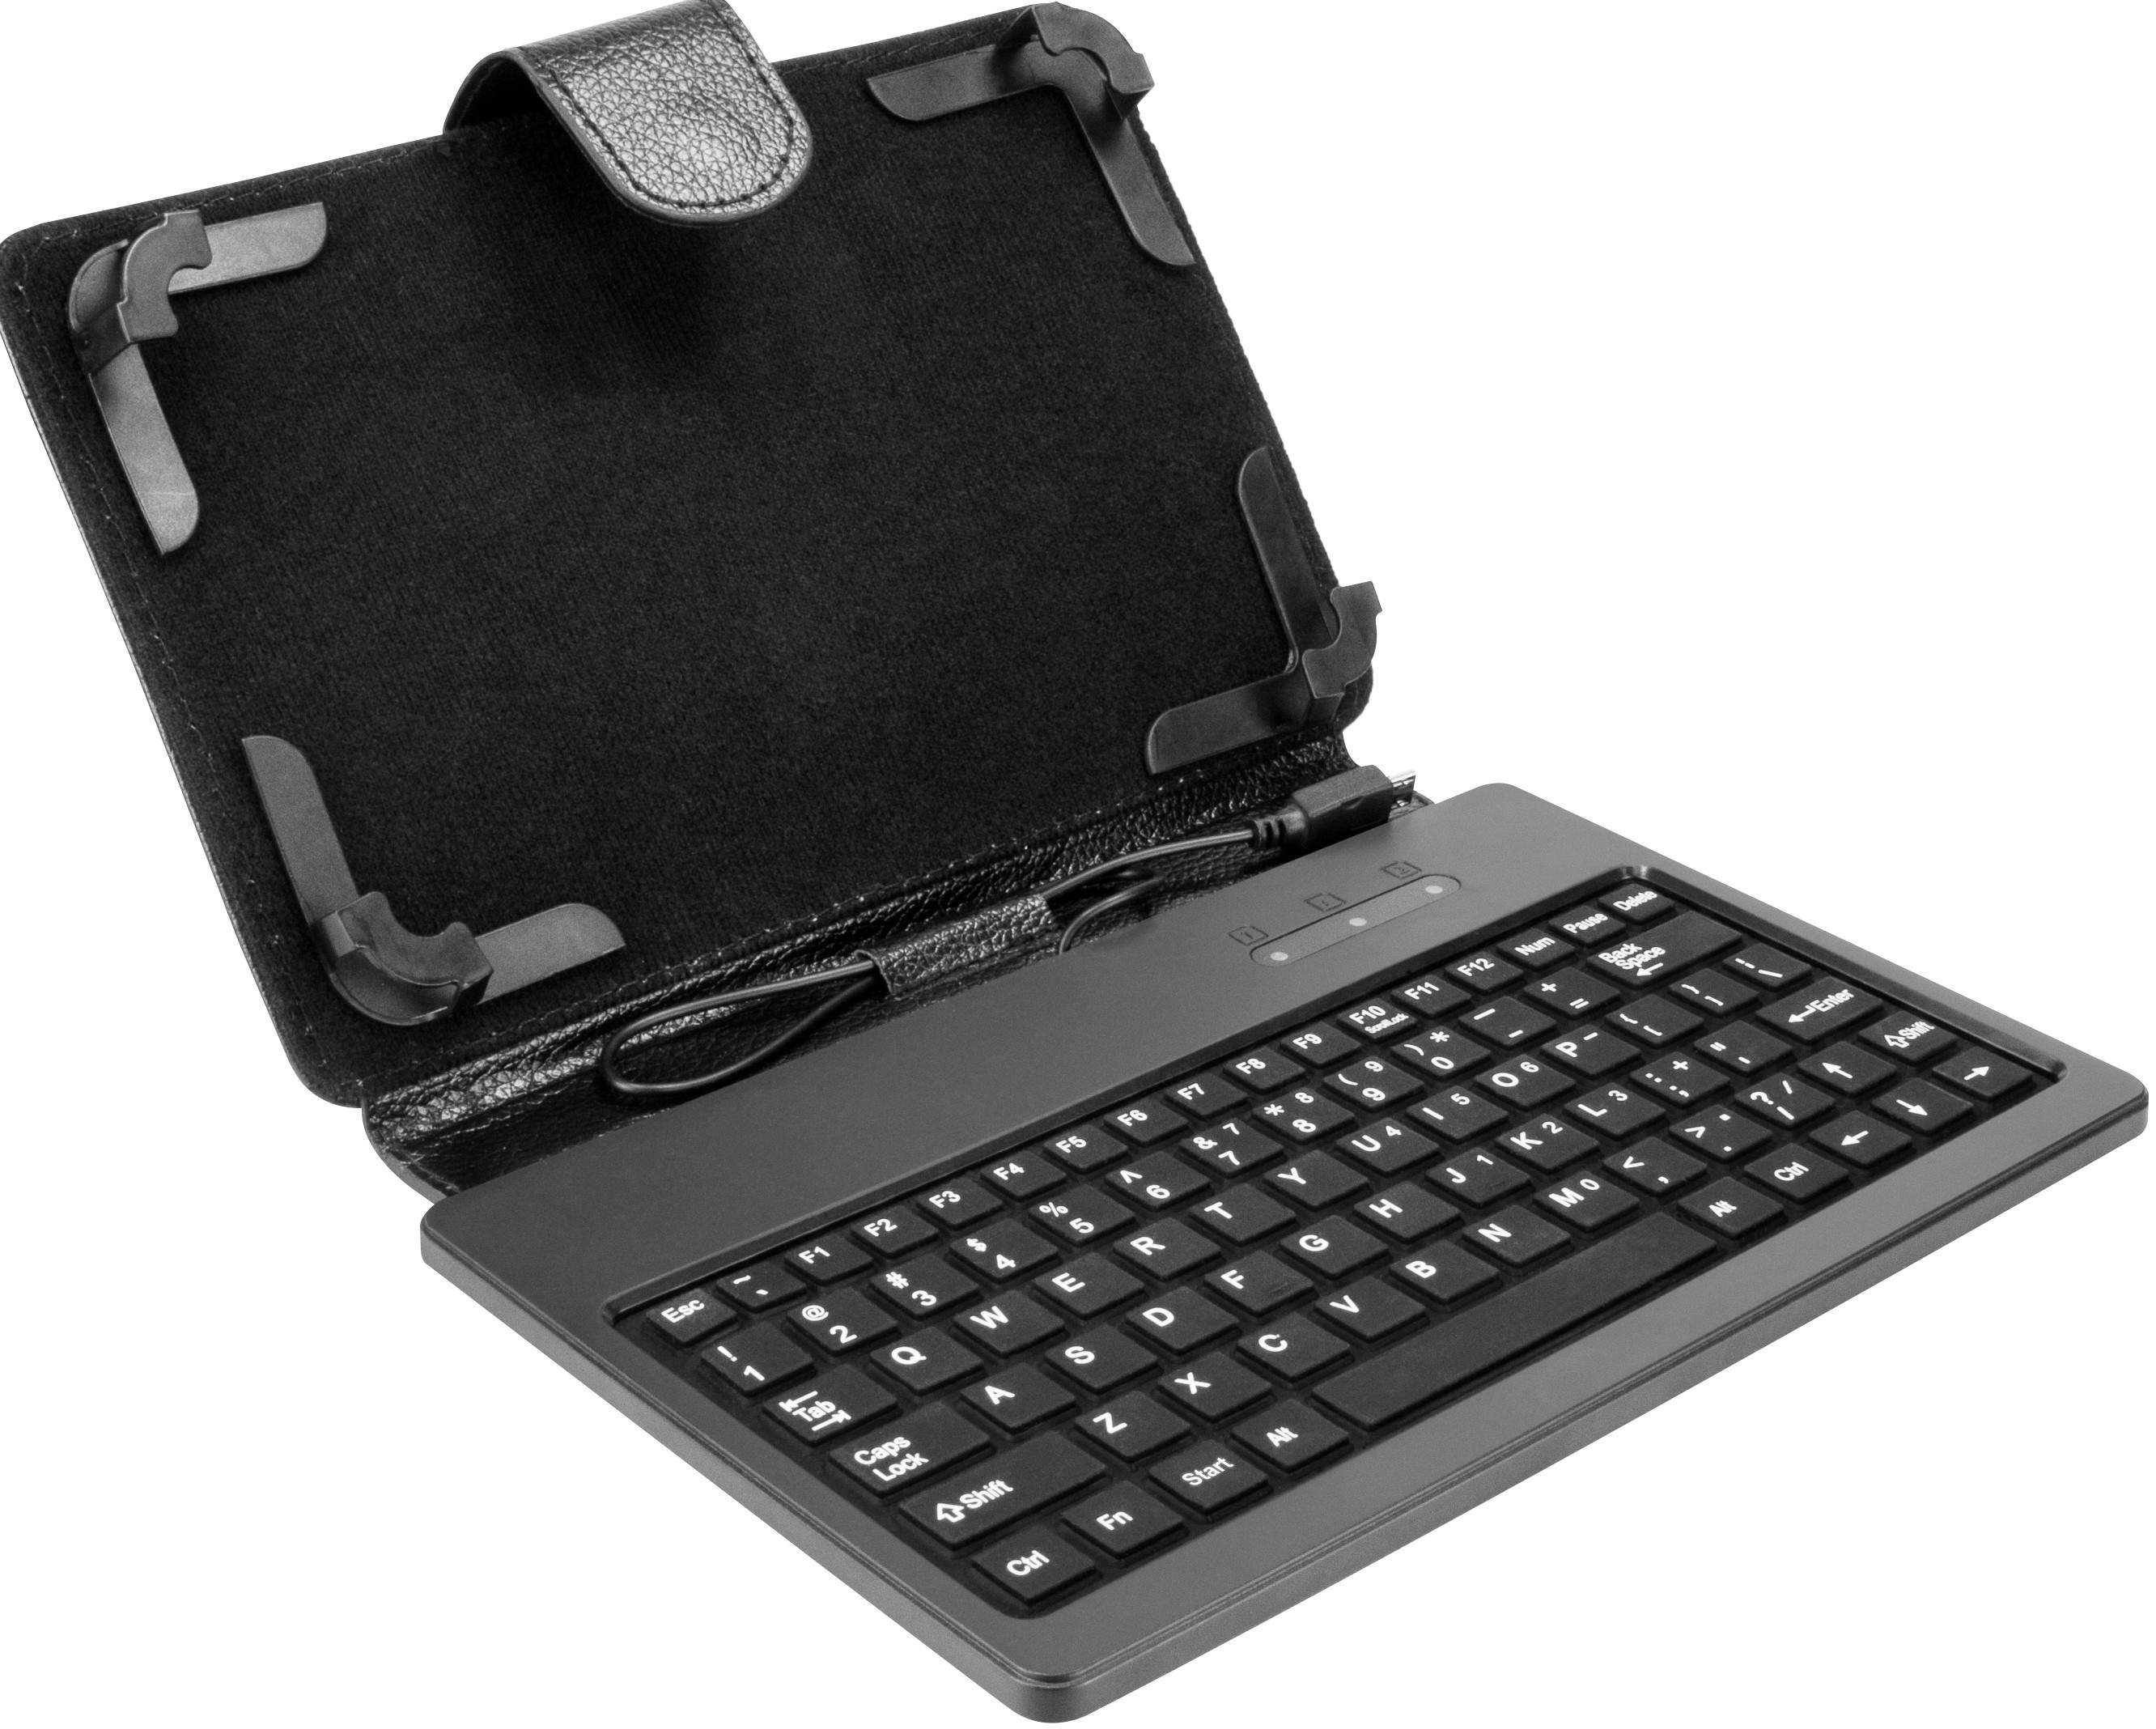 COVER/TECLADO TABLET 7 XTECH XTF-100